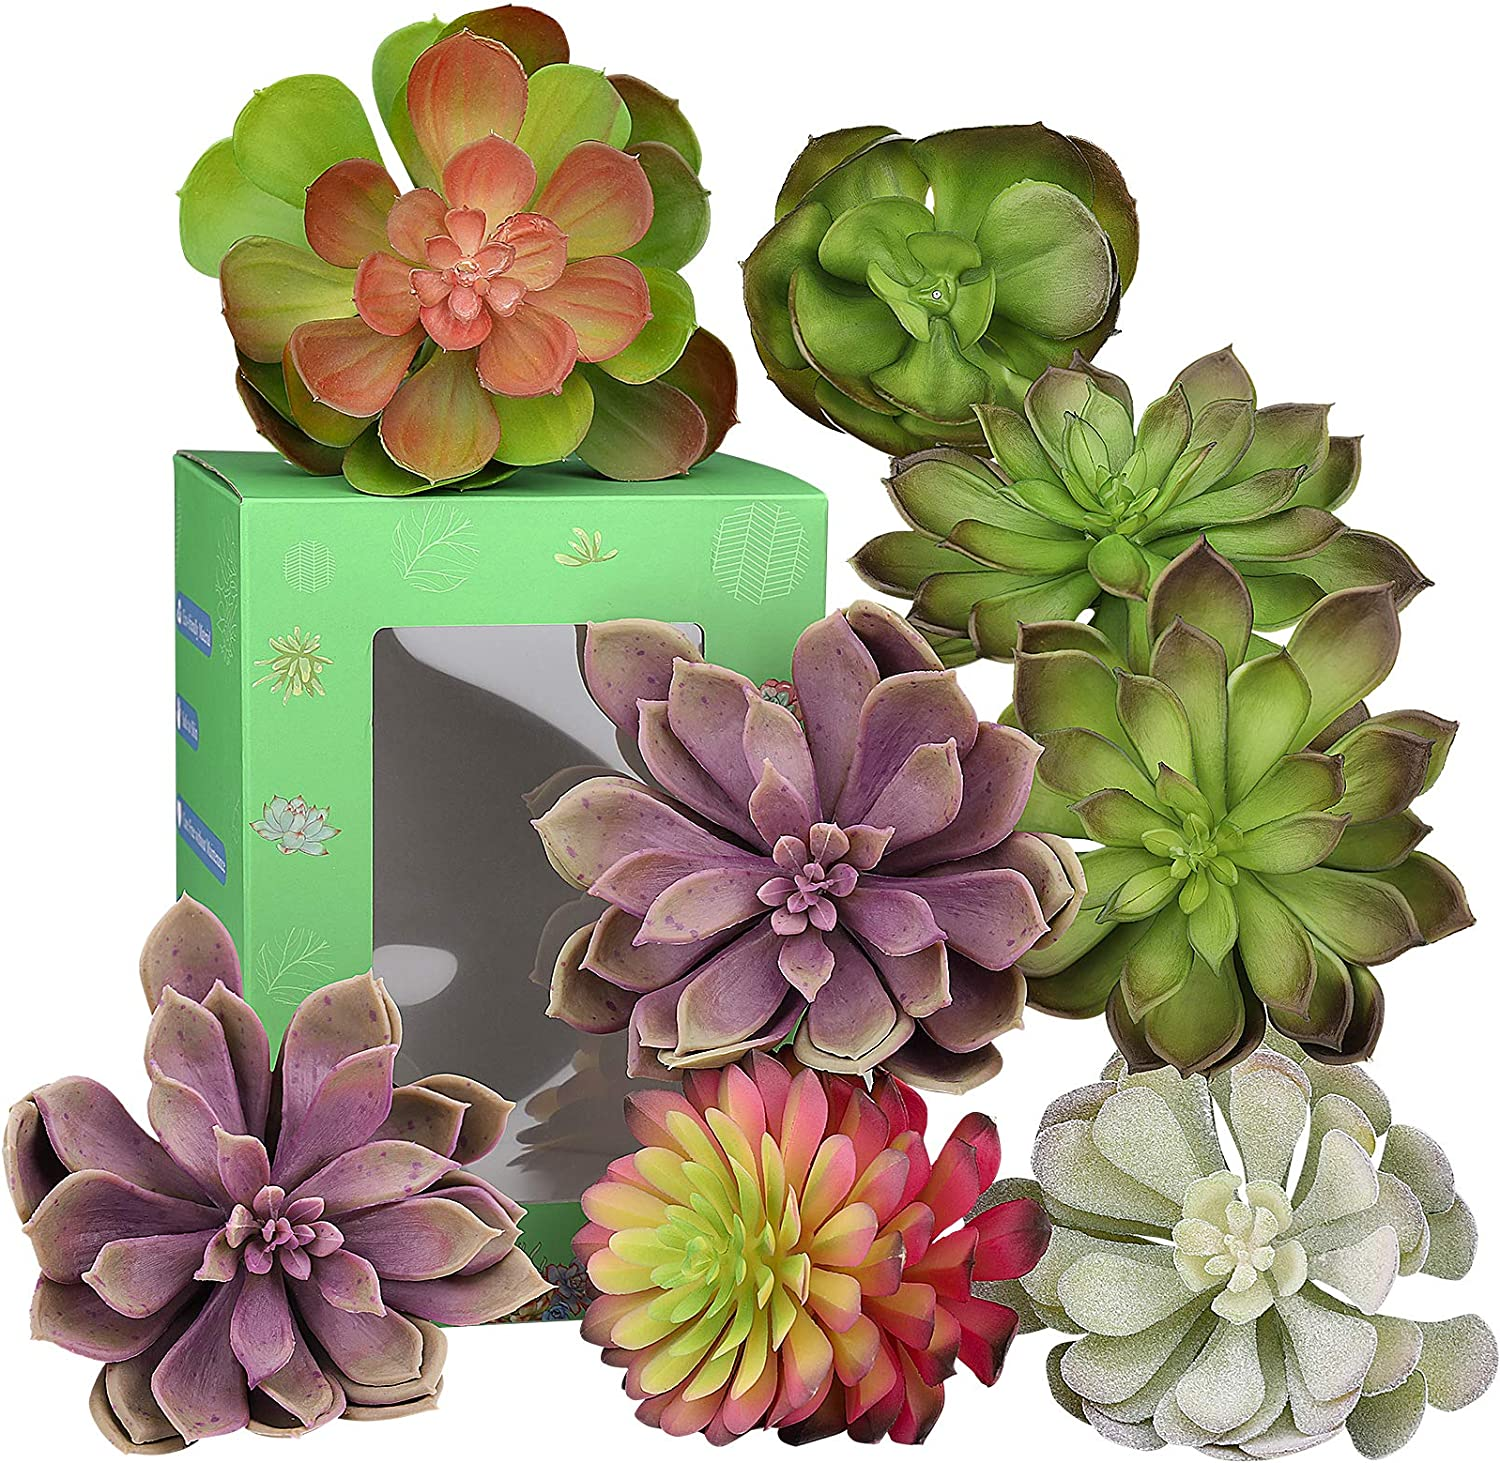 Hopewood Artificial Succulent Plant Decor, Fake Succulent House Plant Faux Modern Live Indoor, Used for The Shelf, Office Desk, Farmhouse Wall Decor (8Pack)